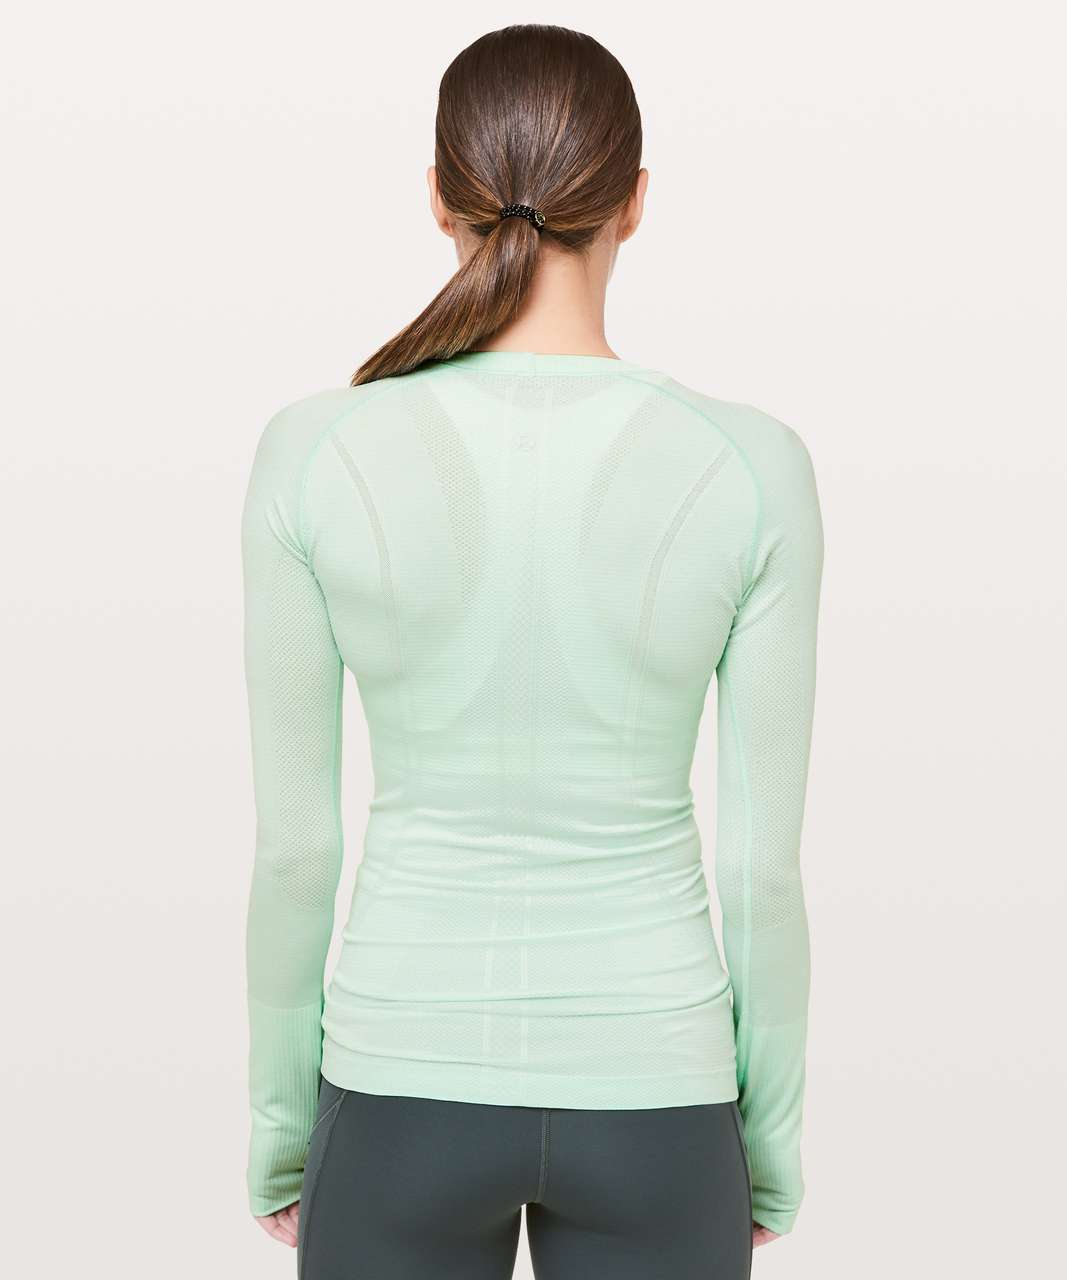 Lululemon Swiftly Tech Long Sleeve Crew - Misty Mint / Misty Mint